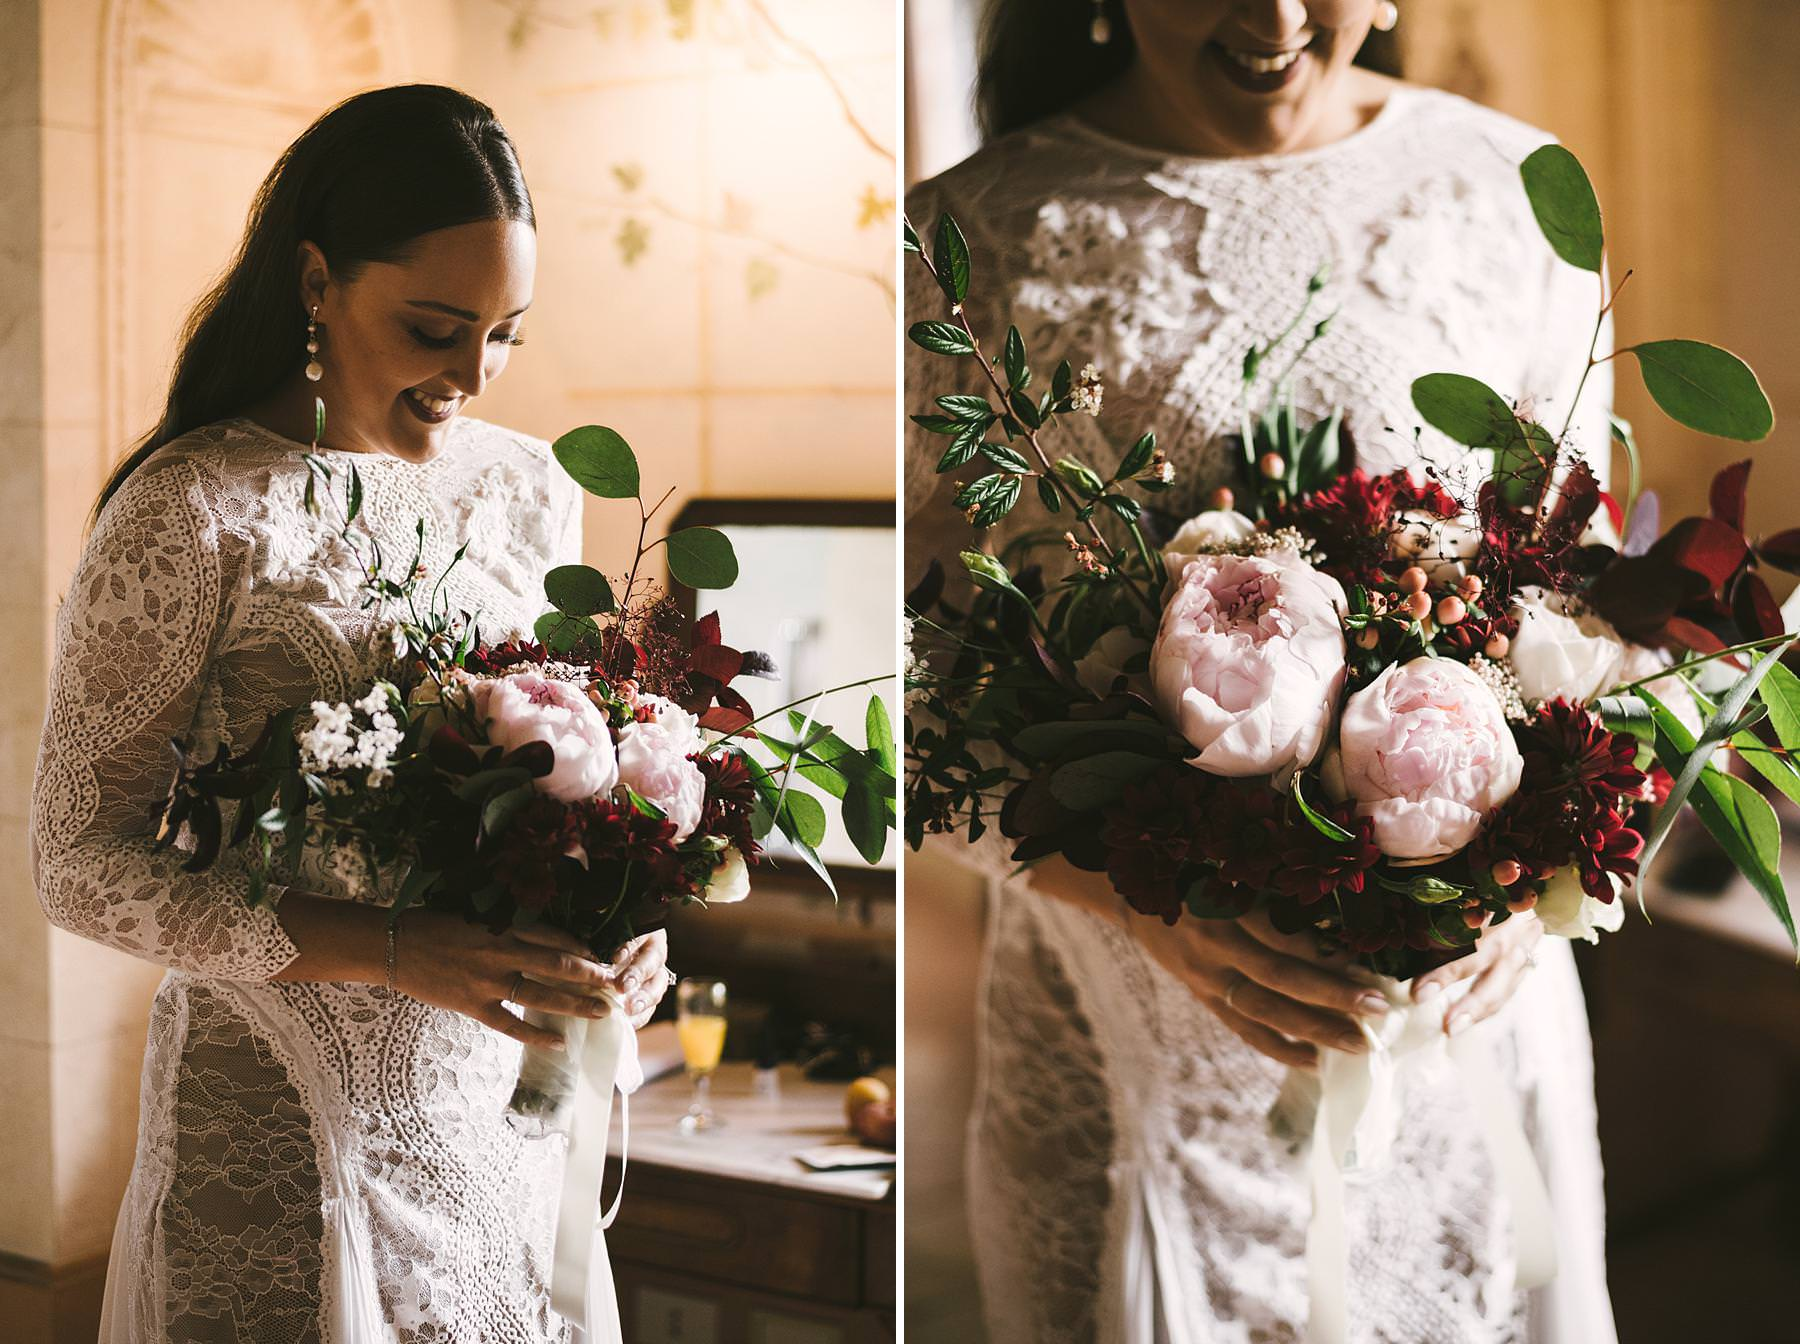 Elegant anche beautiful bride Holly in gorgeous Grace Loves Lace wedding dress at Villa lÕAntica Posta, Umbria. Charming and unforgettable intimate destination wedding in Umbria